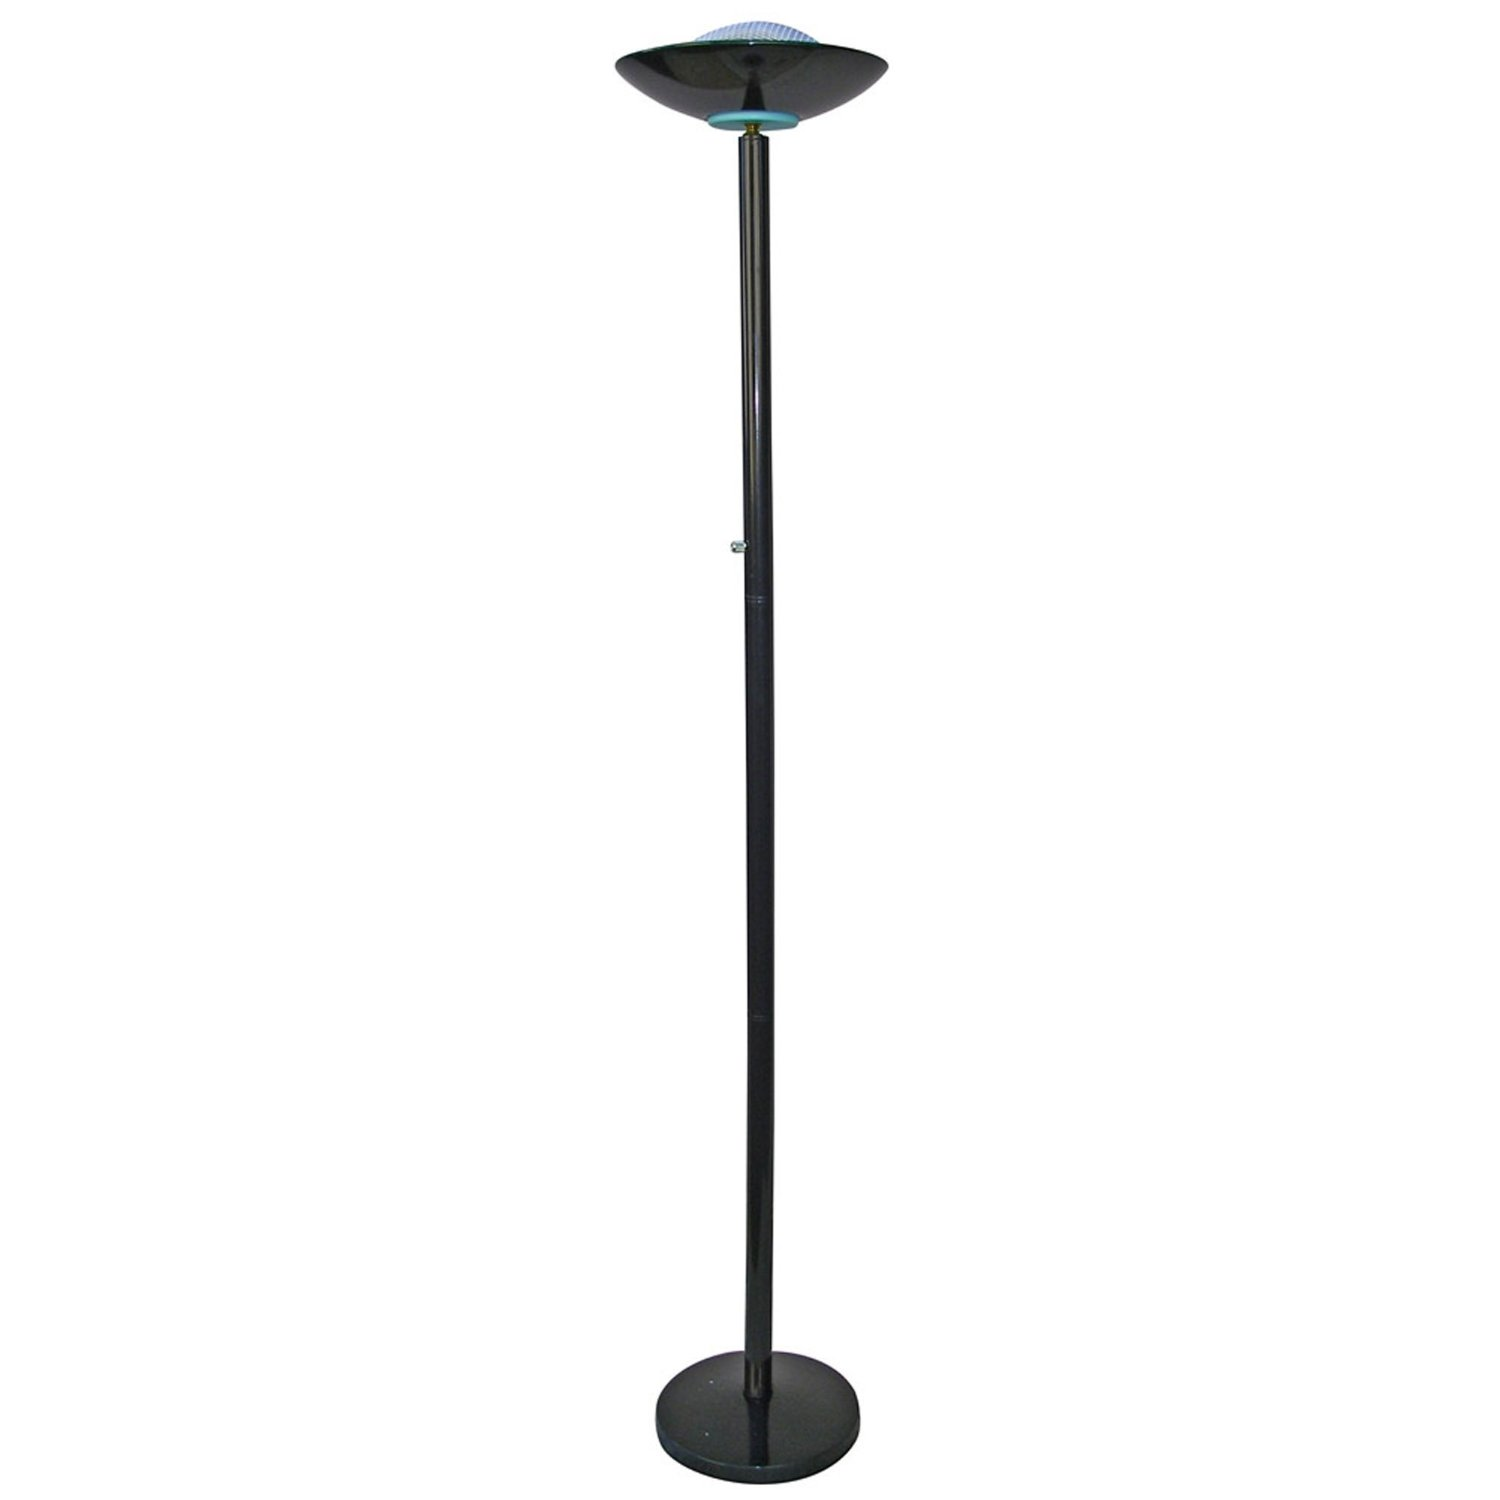 10 facts about Stand up lamps  Warisan Lighting